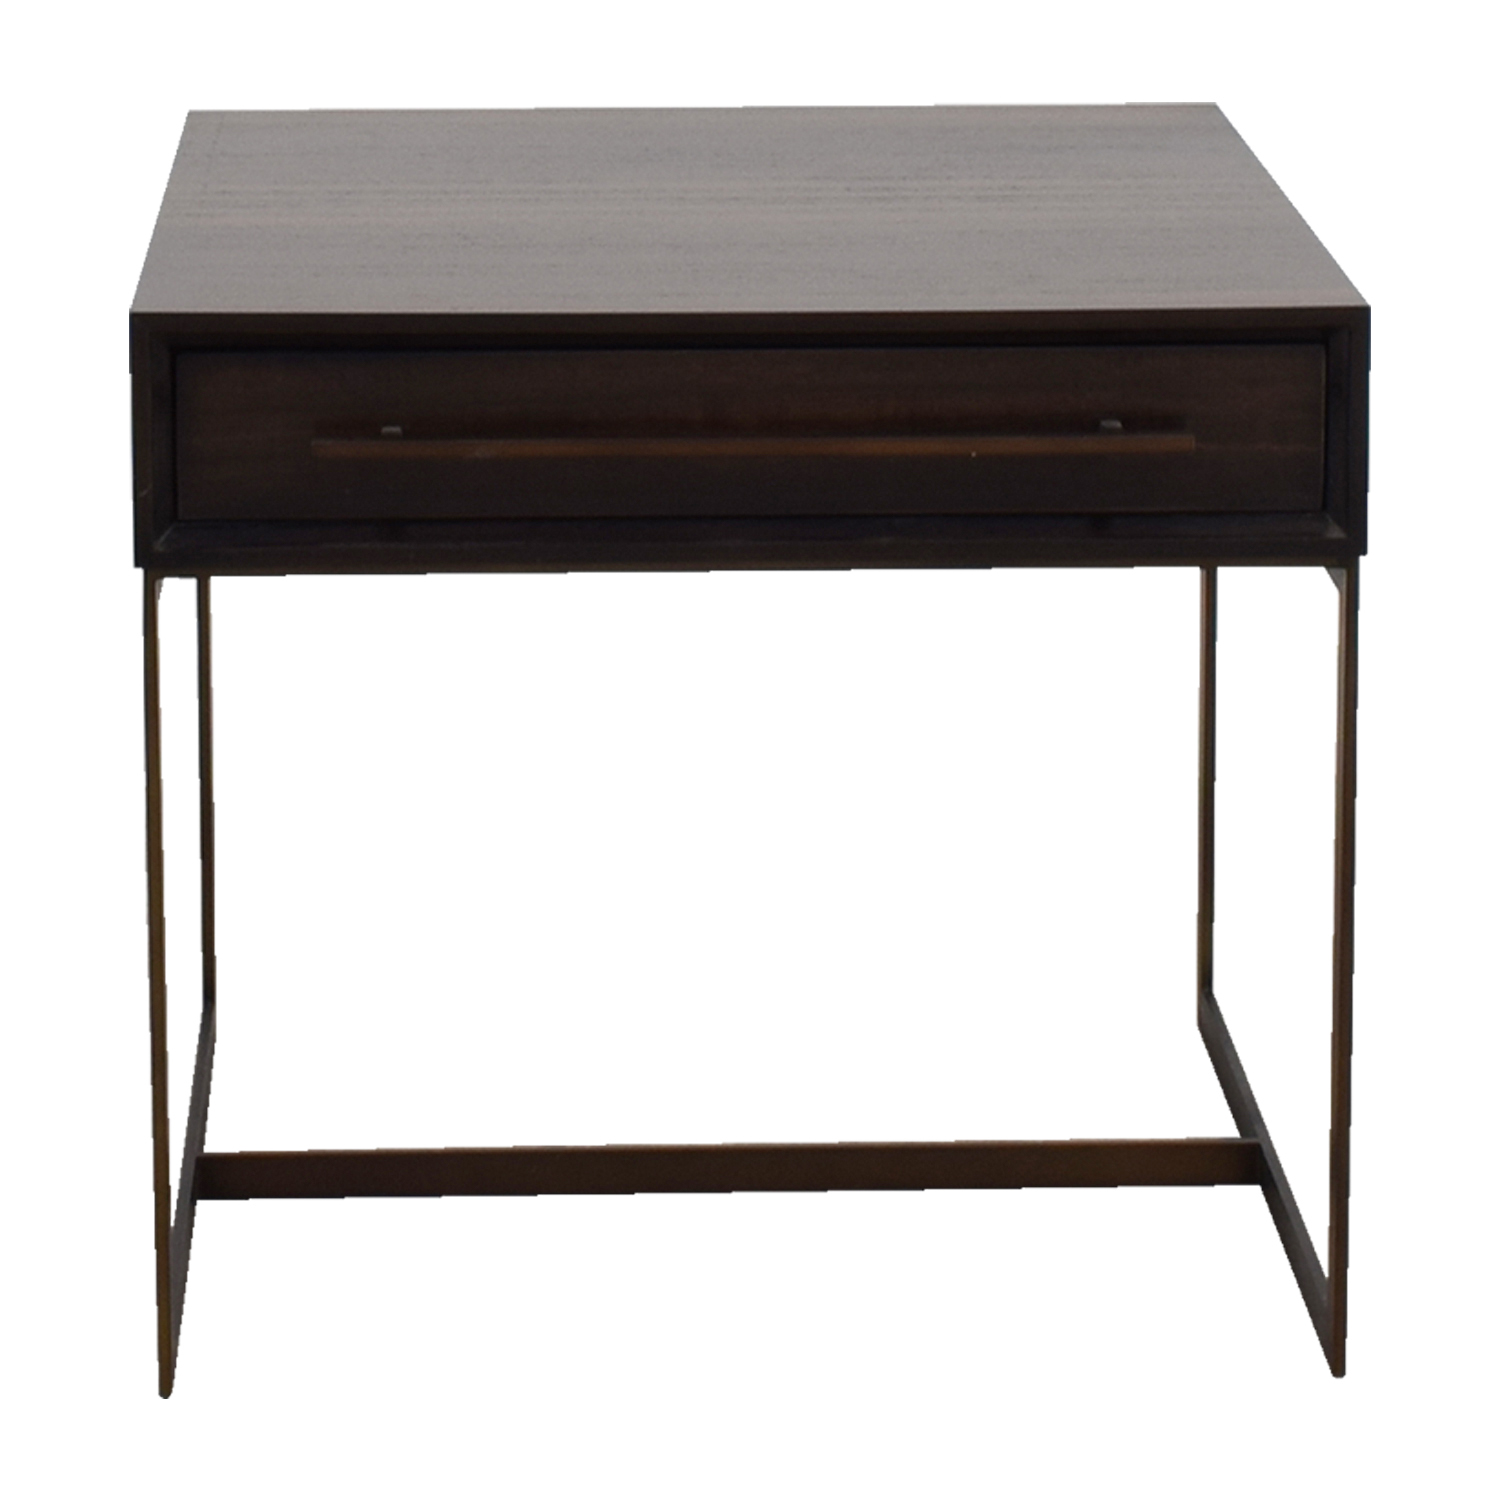 Mitchell Gold + Bob Williams Mitchell Gold + Bob Williams Allure Drawer Side Table nyc